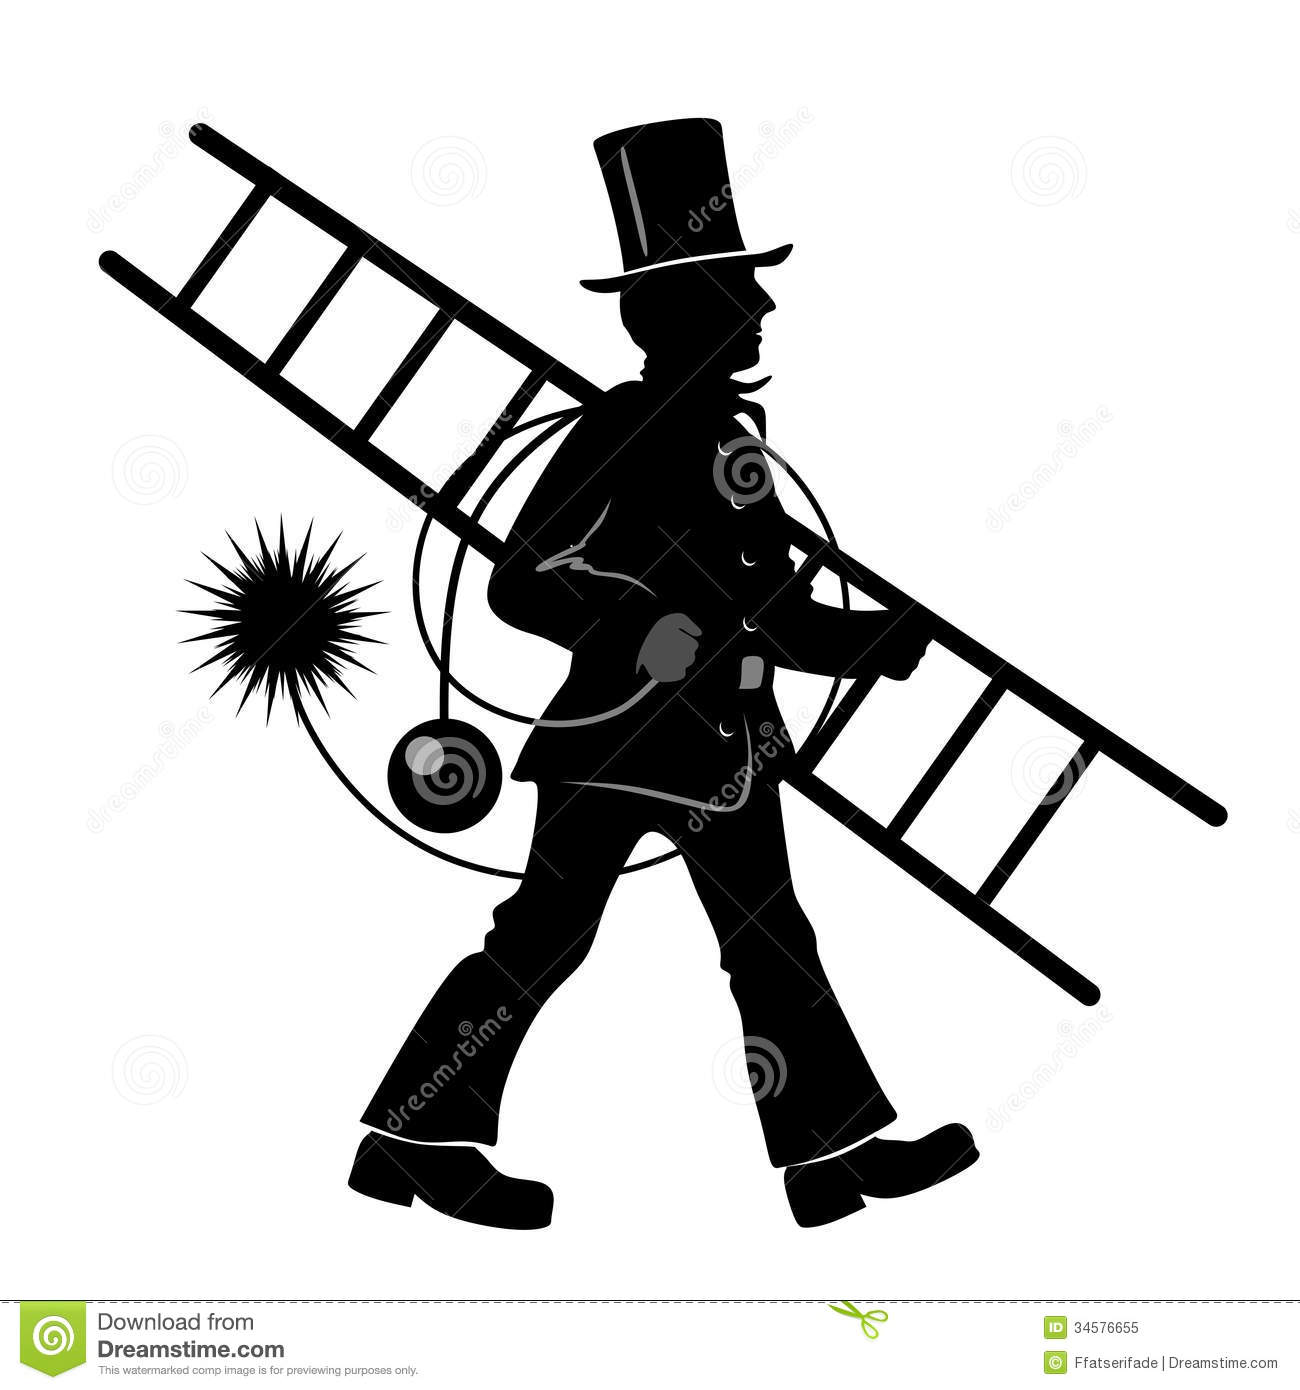 Chimney sweep clipart #12